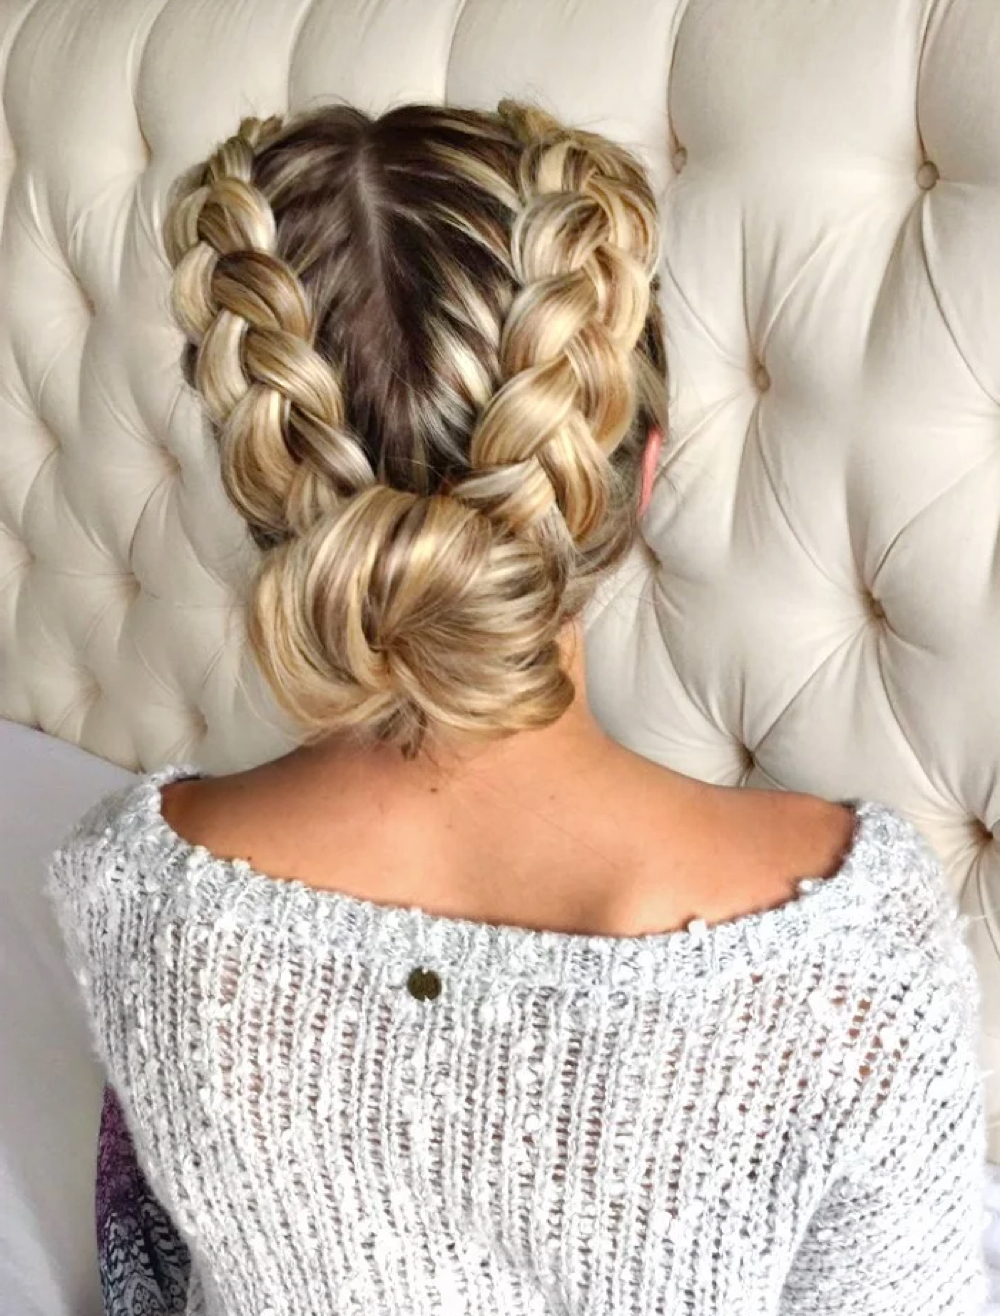 2020 Neat Fishbone Braid Hairstyles Within 29 Gorgeous Braided Updo Ideas For (View 18 of 20)